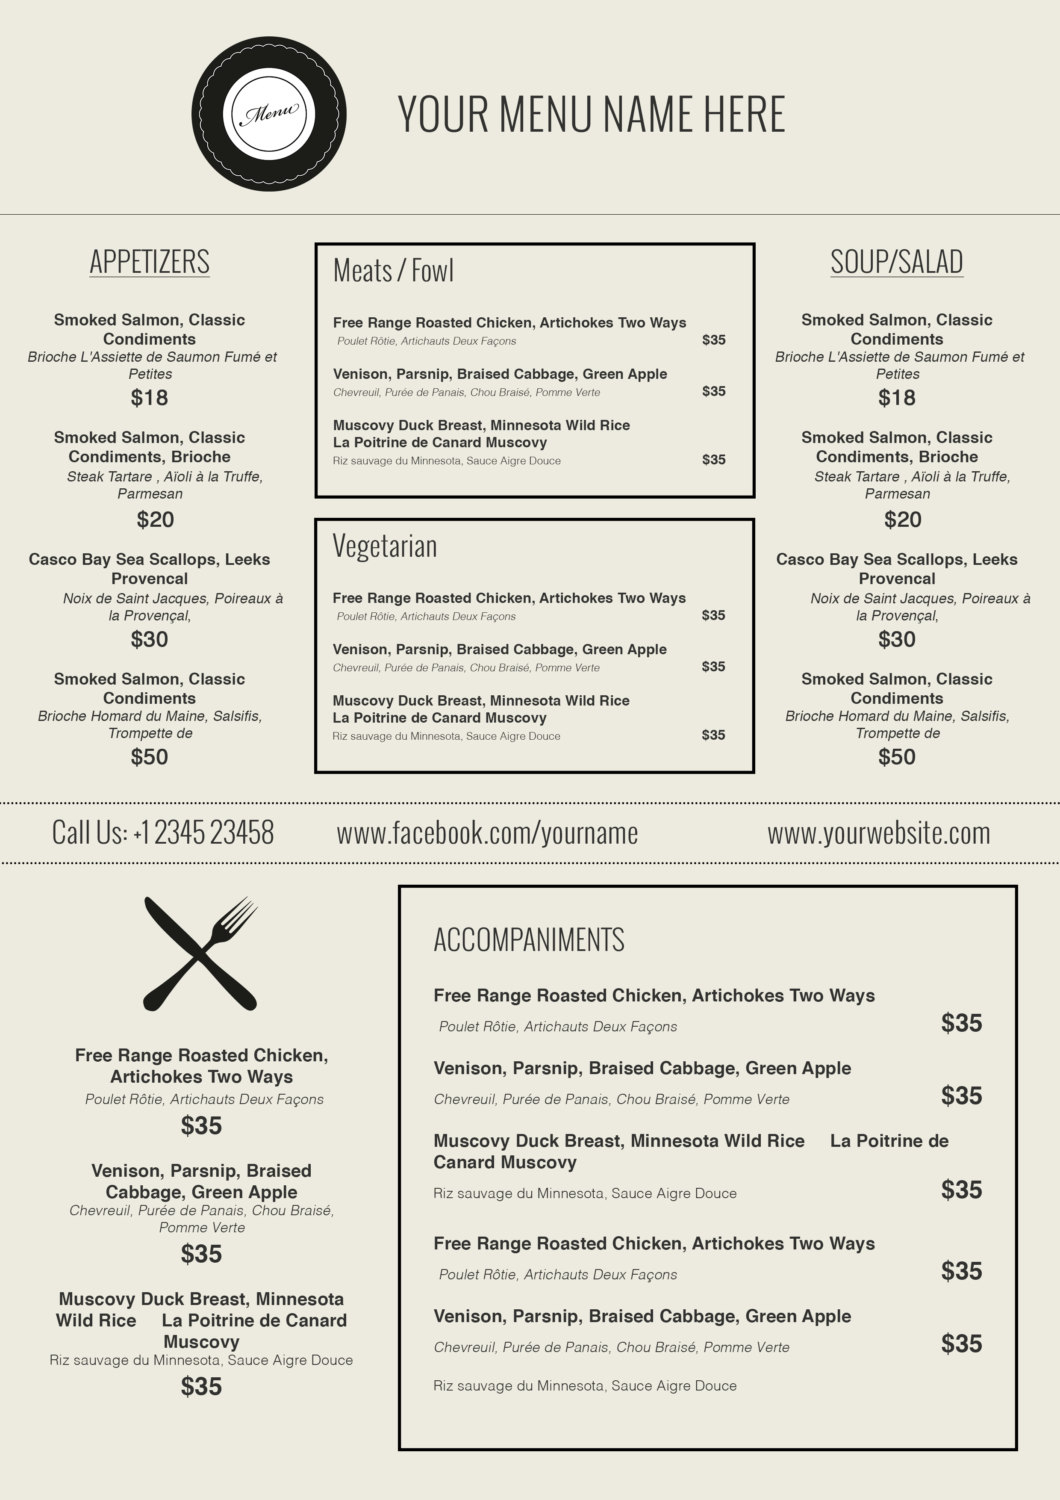 002 Free Menu Template For Word Ideas Friench Food In ~ Ulyssesroom - Free Printable Menu Templates Word